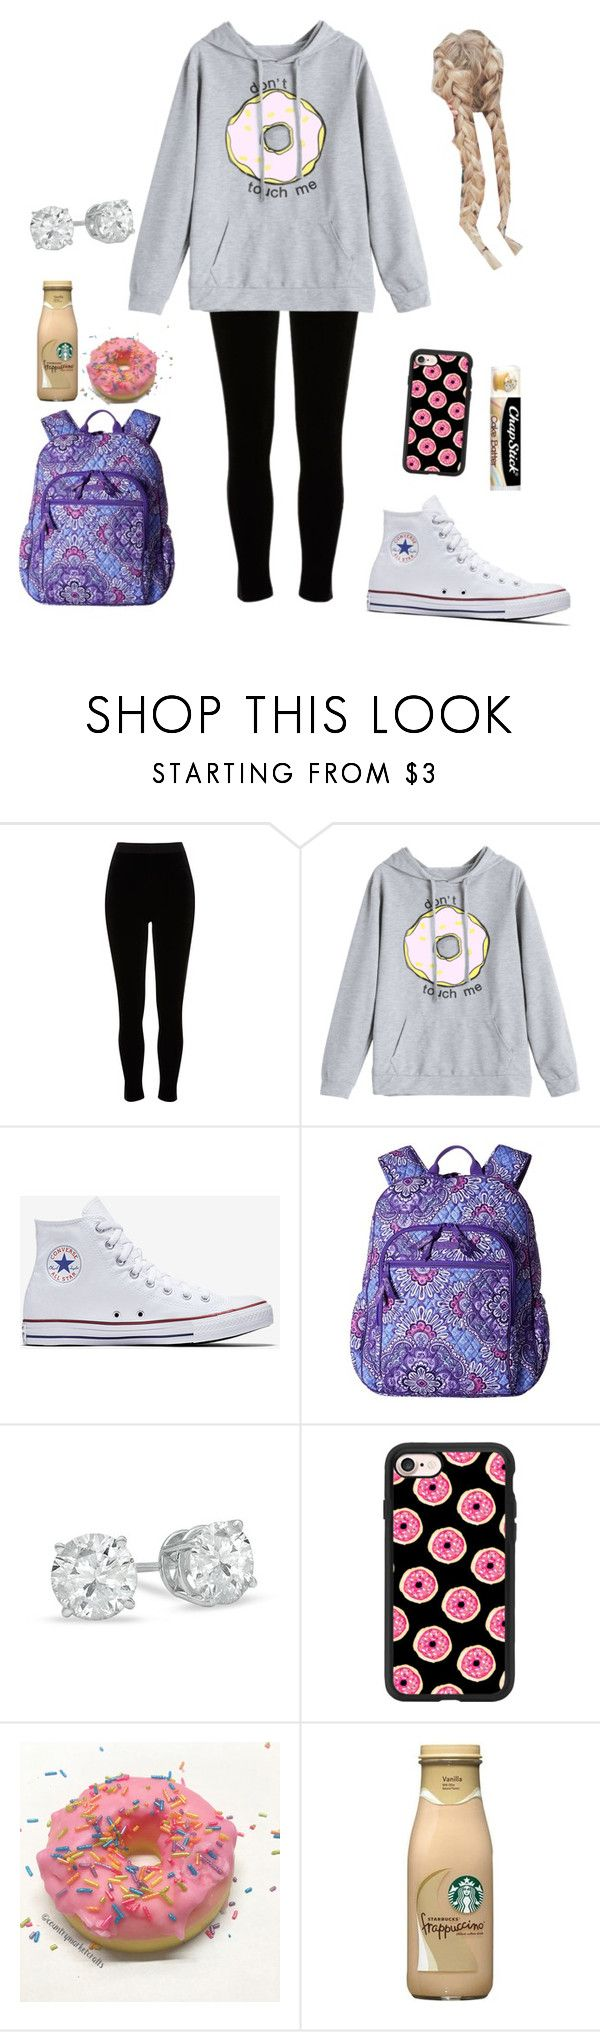 """""""Breakfast """" by haley-hetrick on Polyvore featuring River Island, Converse, Vera Bradley, Casetify and Chapstick"""